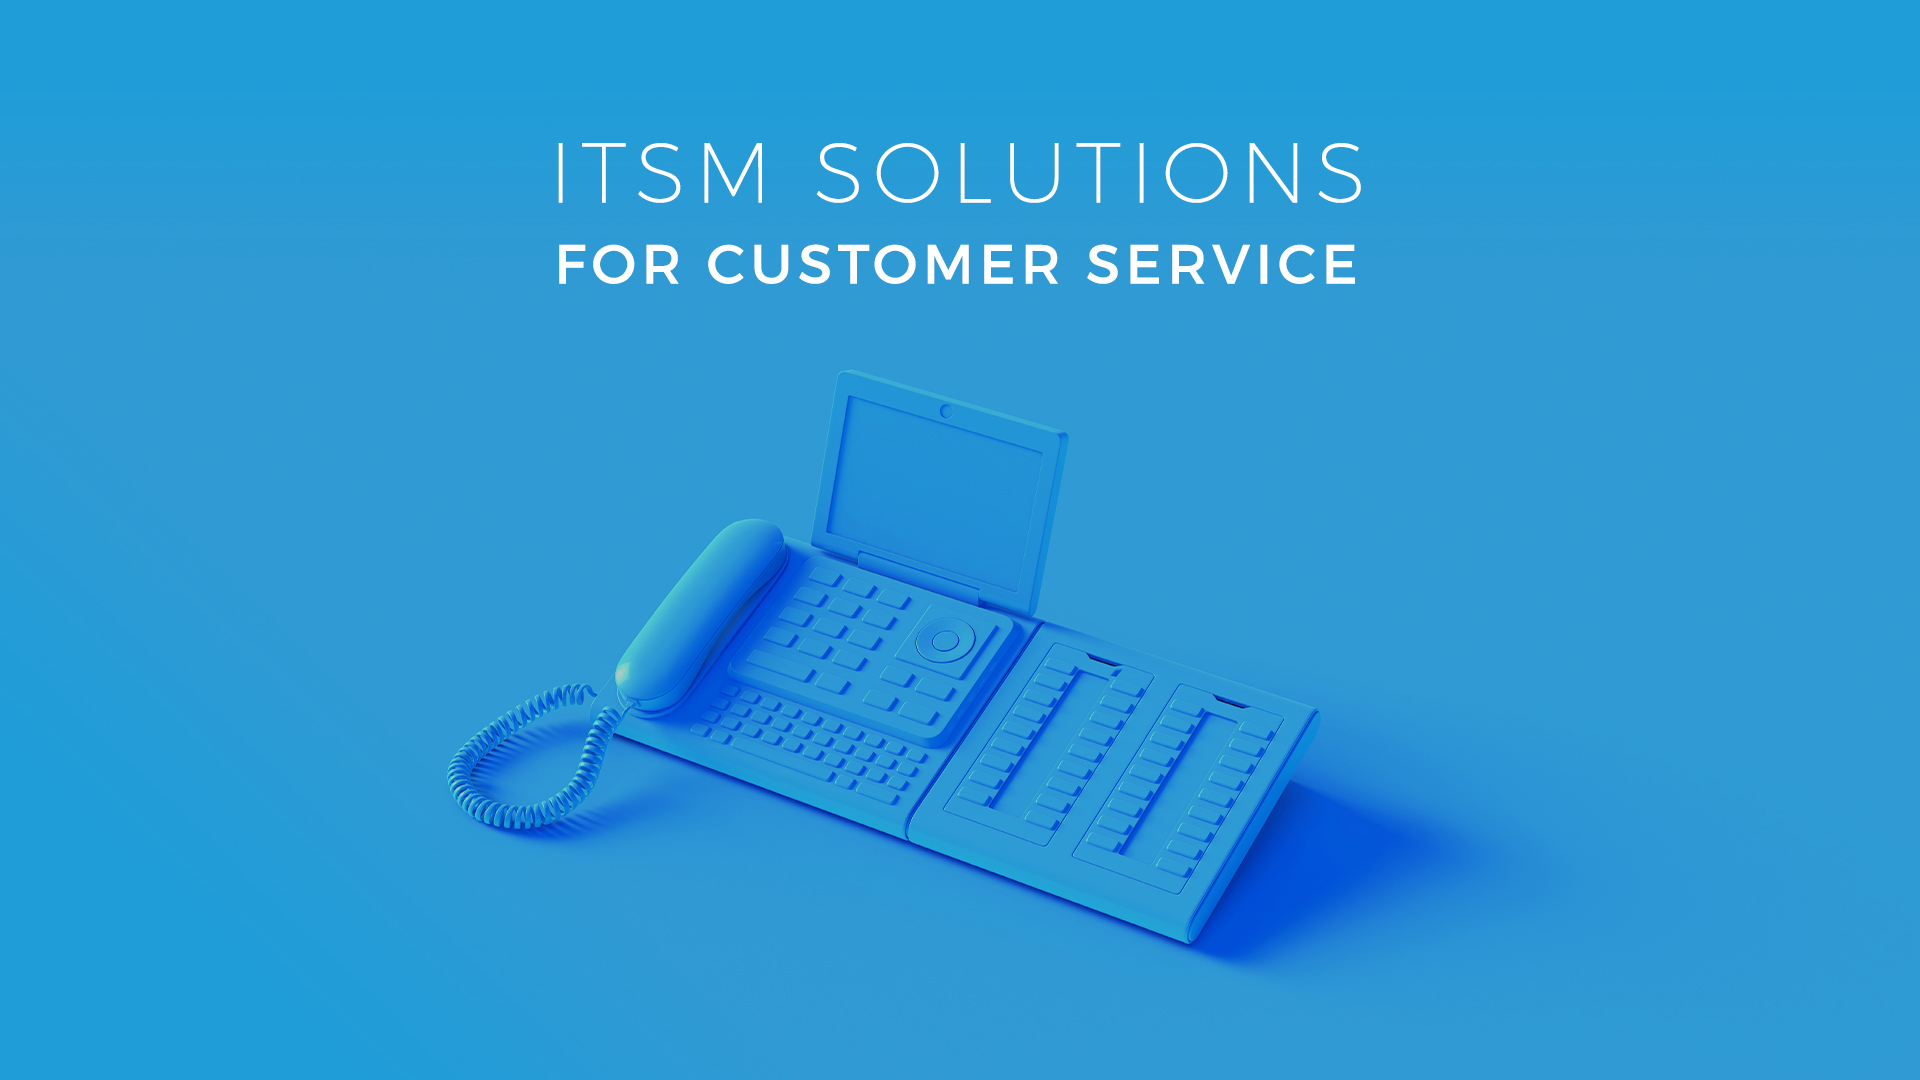 ITSM Solutions for Customer Service